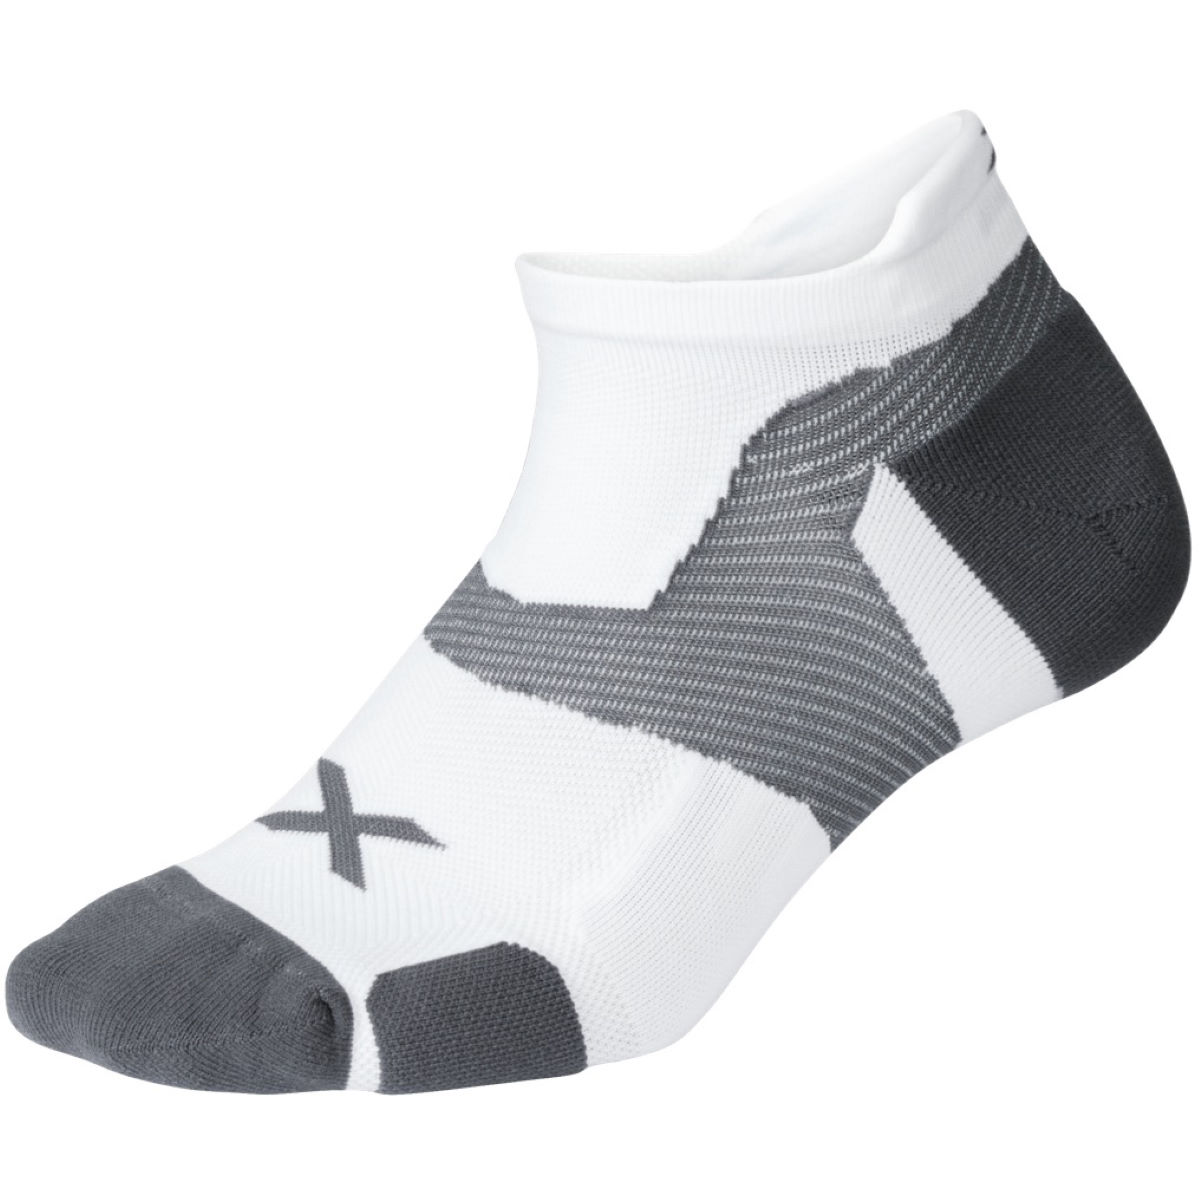 Image of Chaussettes 2XU Vectr Cushion No Show (blanches) - L Blanc/Gris